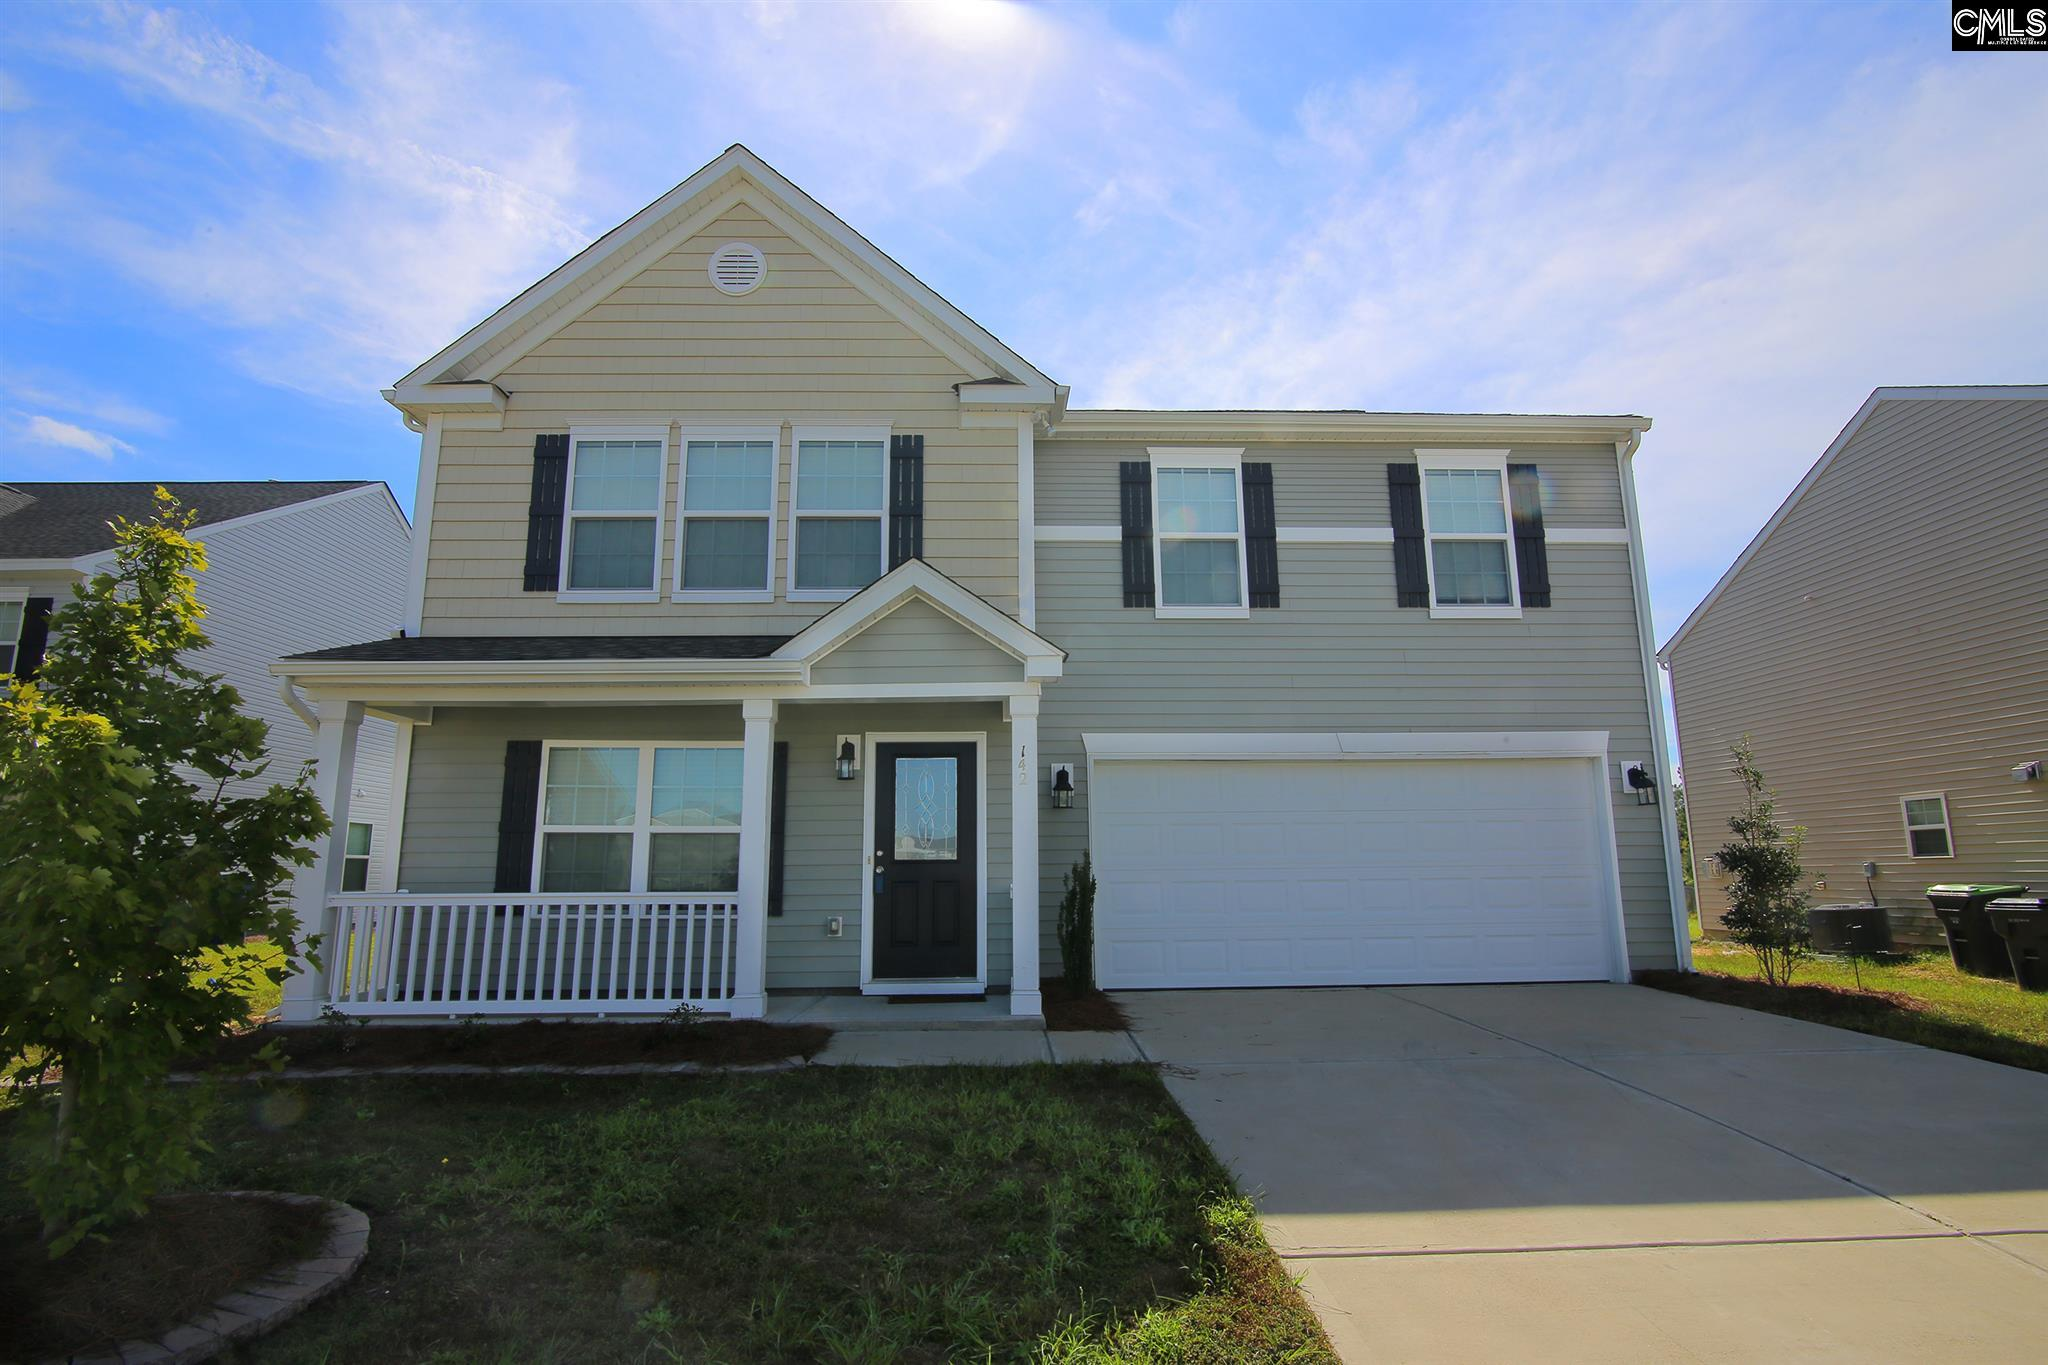 142 Turnfield Dr West Columbia, SC 29170